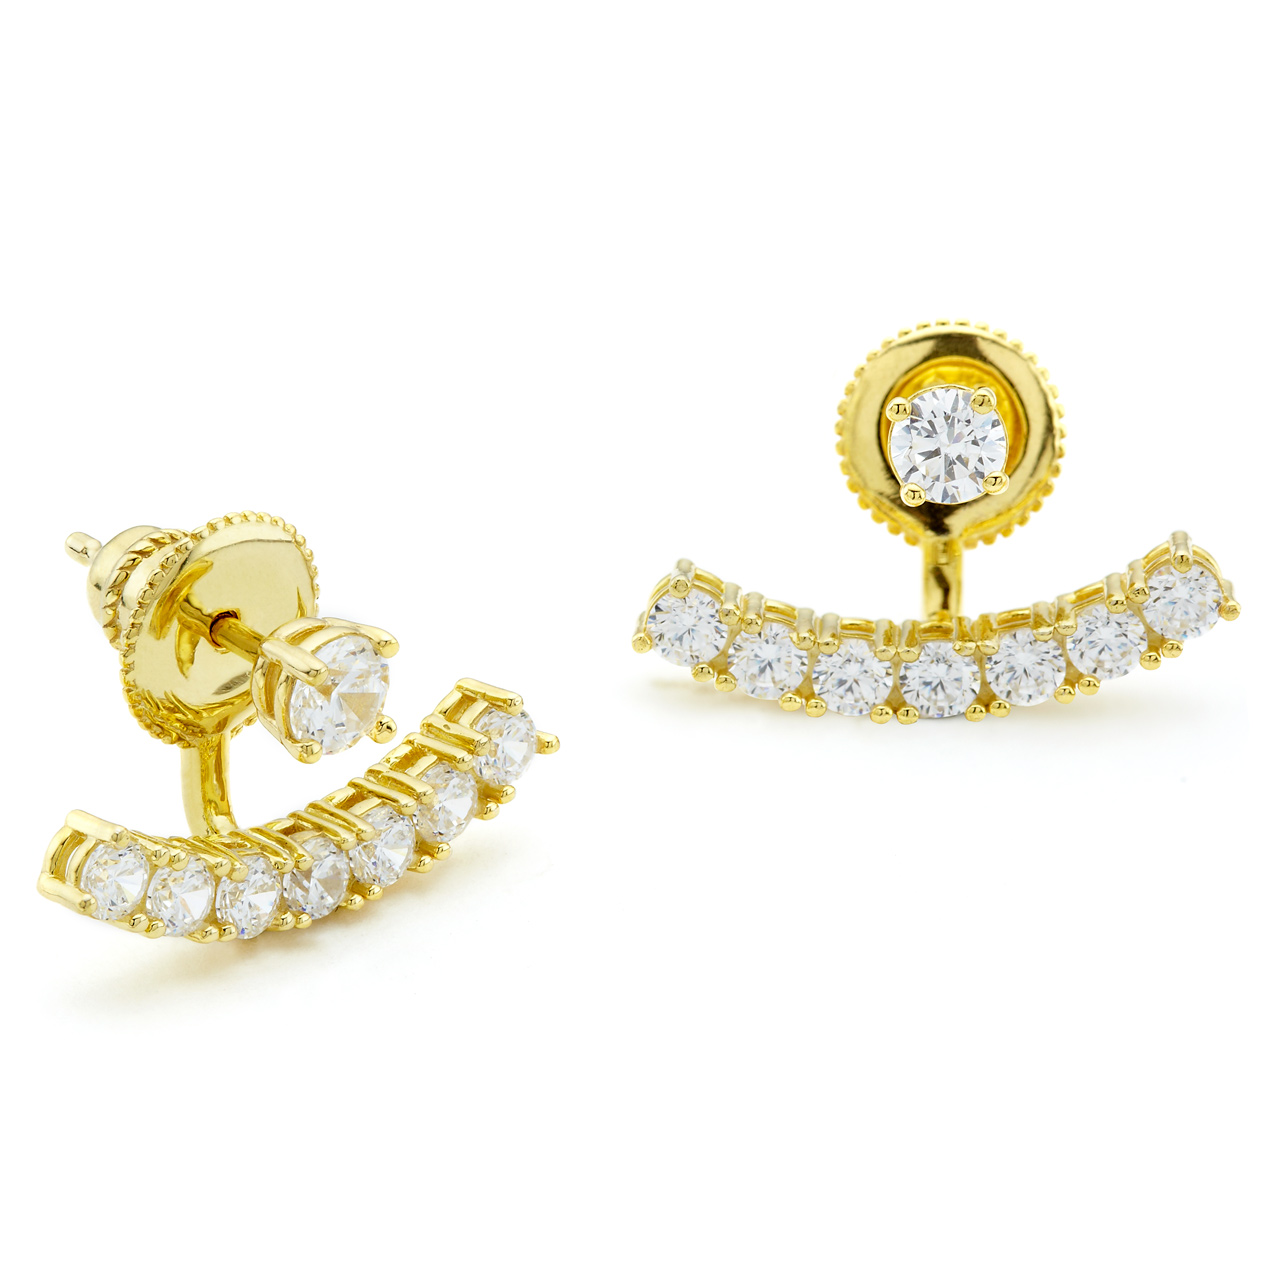 One By Cz Swing Ear Studs With Curved Bar In Yellow Gold Vermeil Constellations Collection